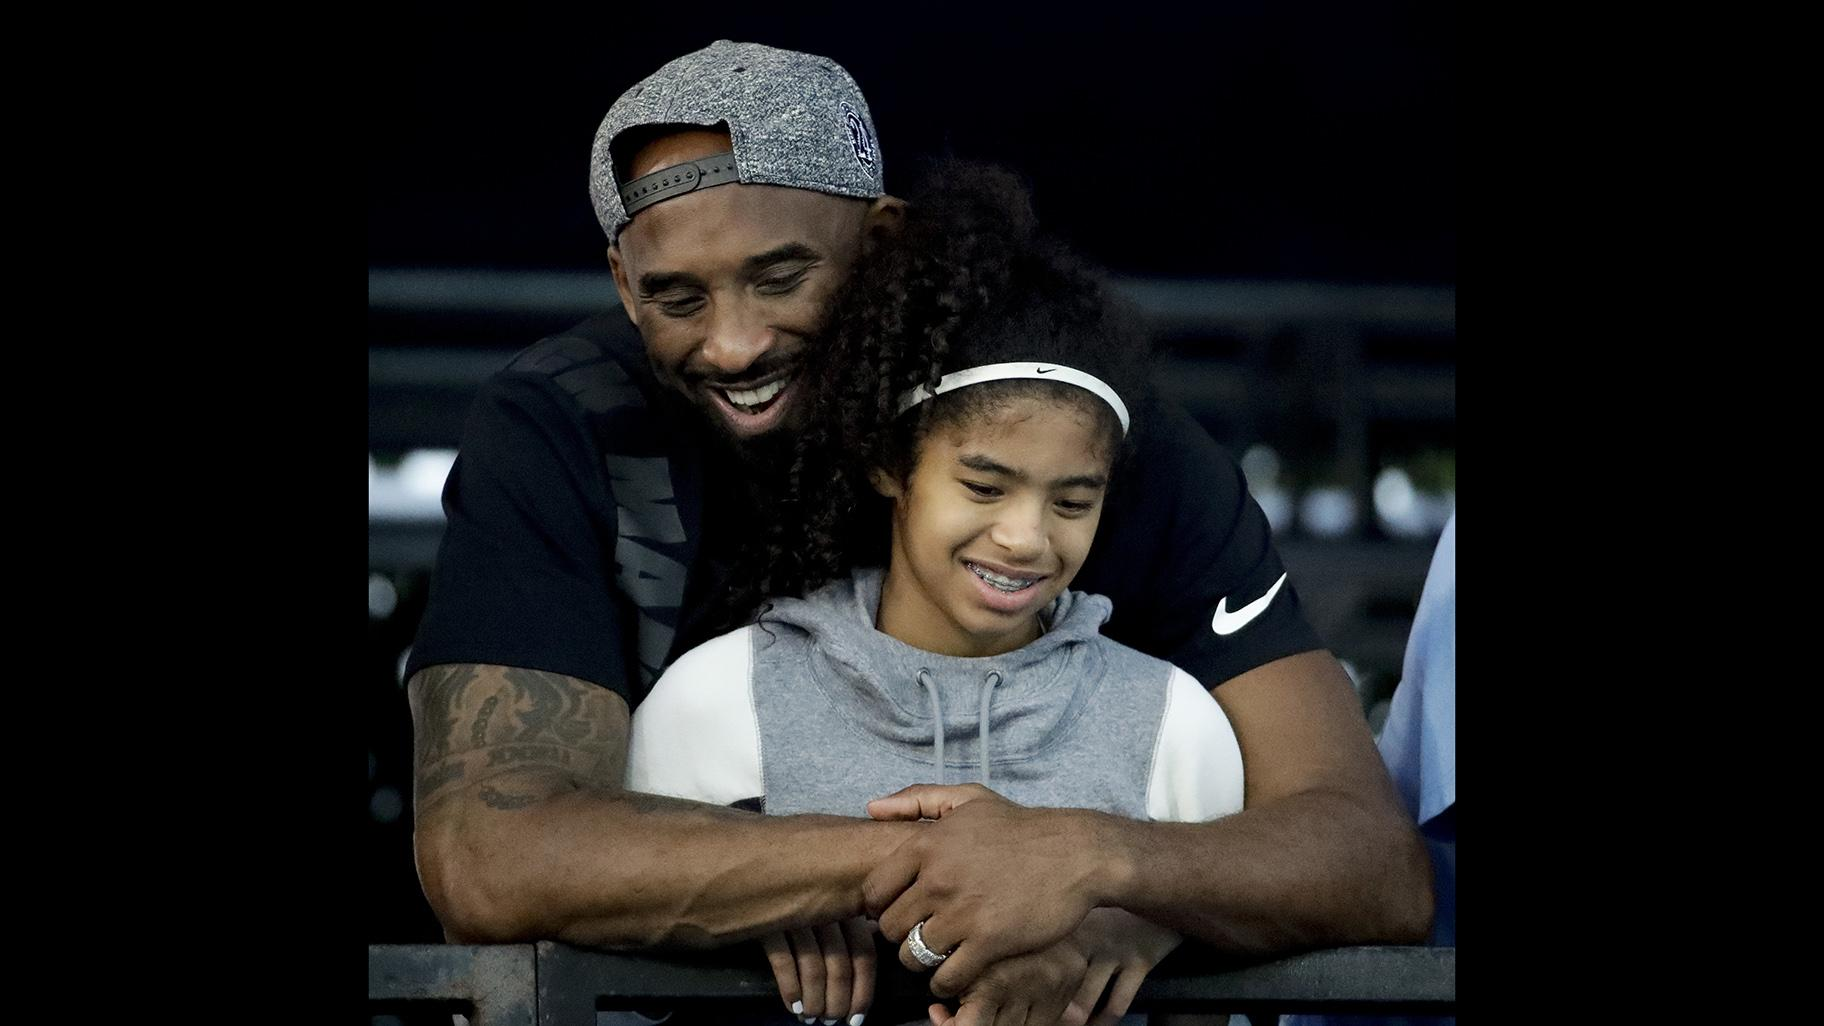 In this July 26, 2018 file photo former Los Angeles Laker Kobe Bryant and his daughter Gianna watch during the U.S. national championships swimming meet in Irvine, Calif. (AP Photo / Chris Carlson)